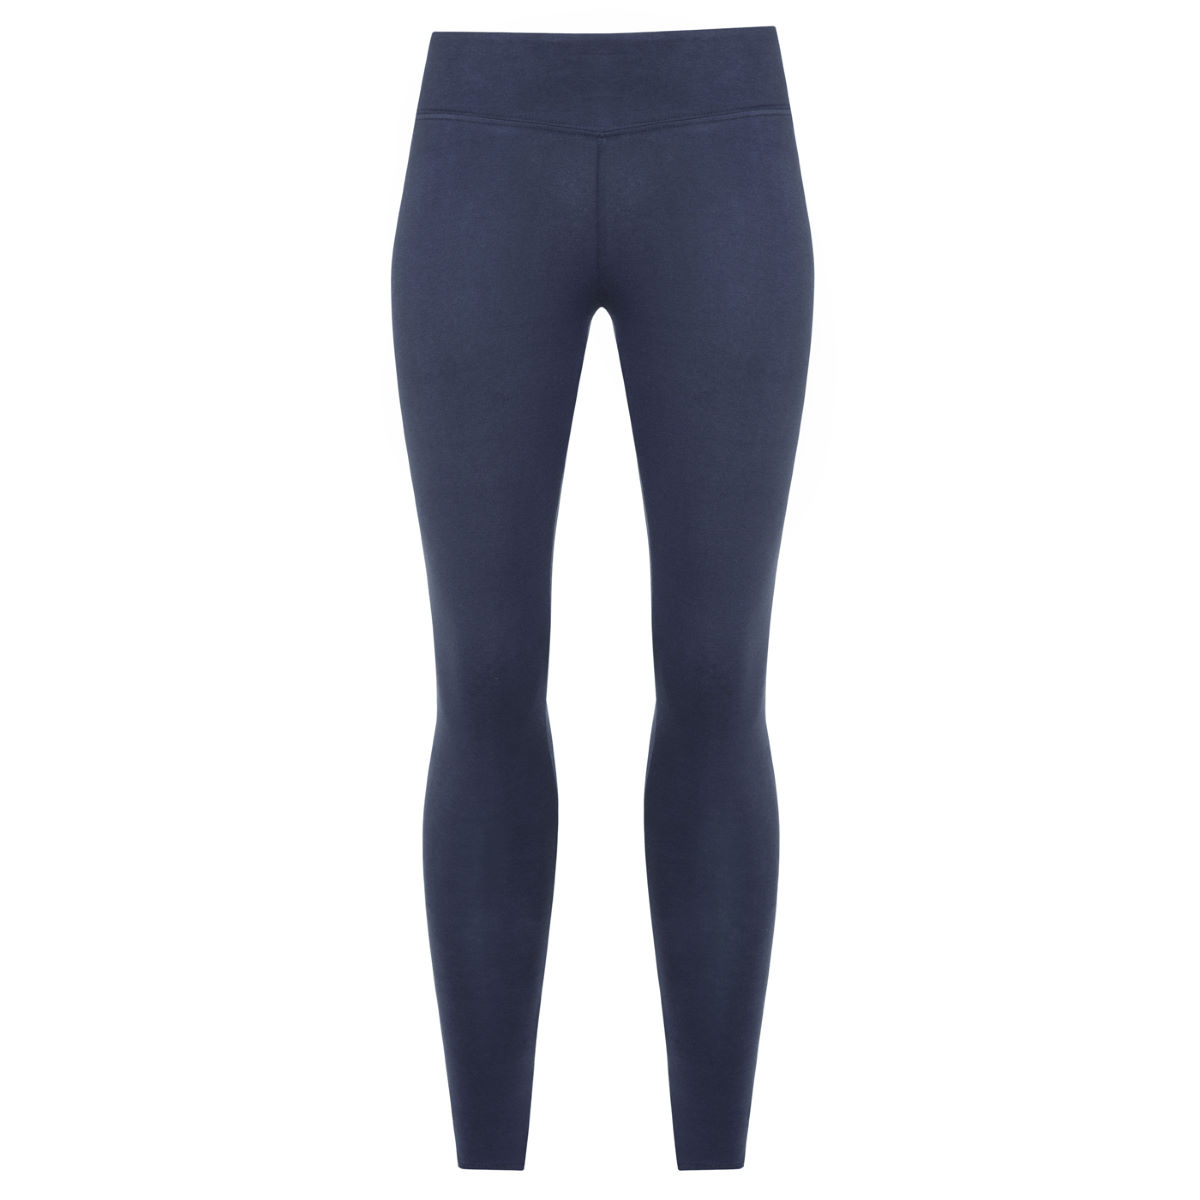 Manuka Life Women's Lotus Yoga Legging - Mallas